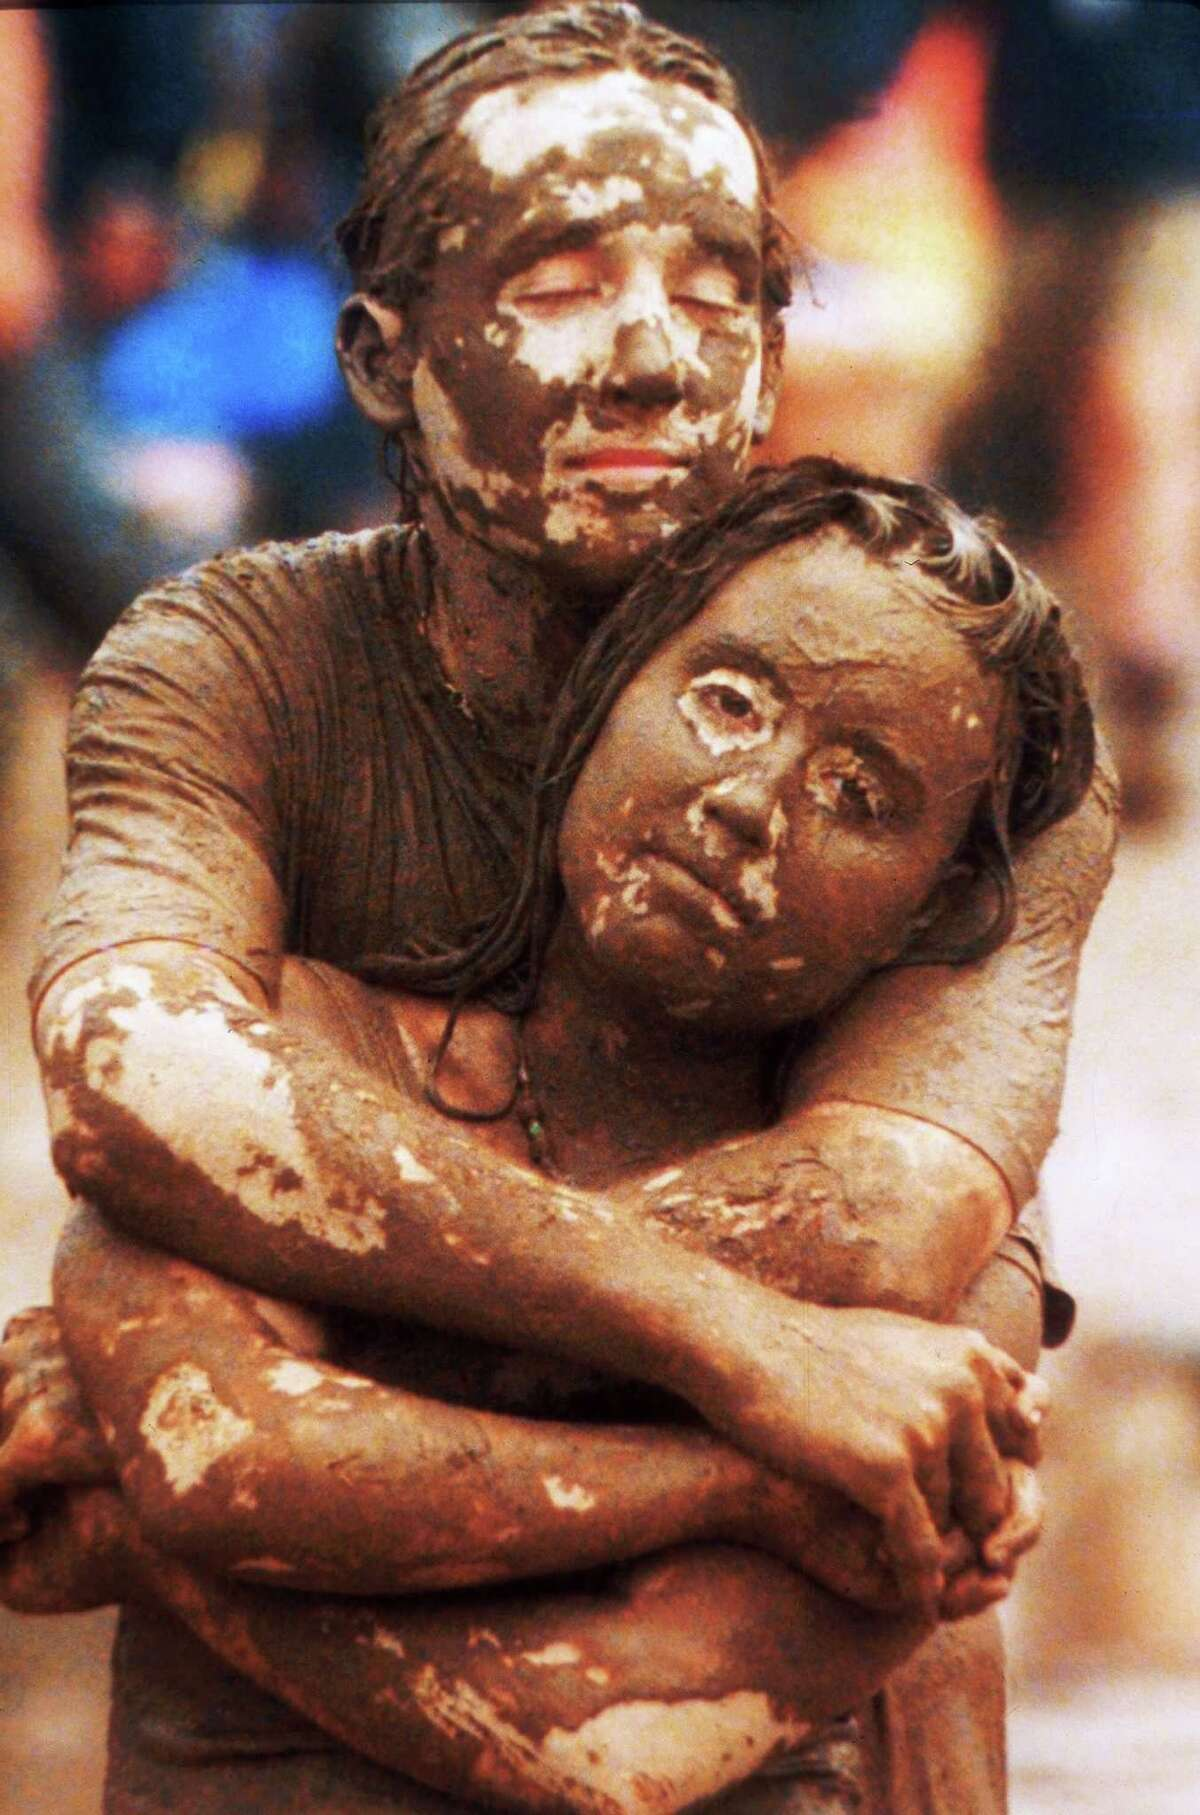 FILE--Standing on a muddy field in front of the stage, Kyle Keyser, 21, wraps his arms around Linda Latzlsberger, 18, as they listen to the music of Traffic during Woodstock '94 in Saugerties, N.Y., August 14, 1994. Both Keyser and Latzlsberger are from Baltimore.